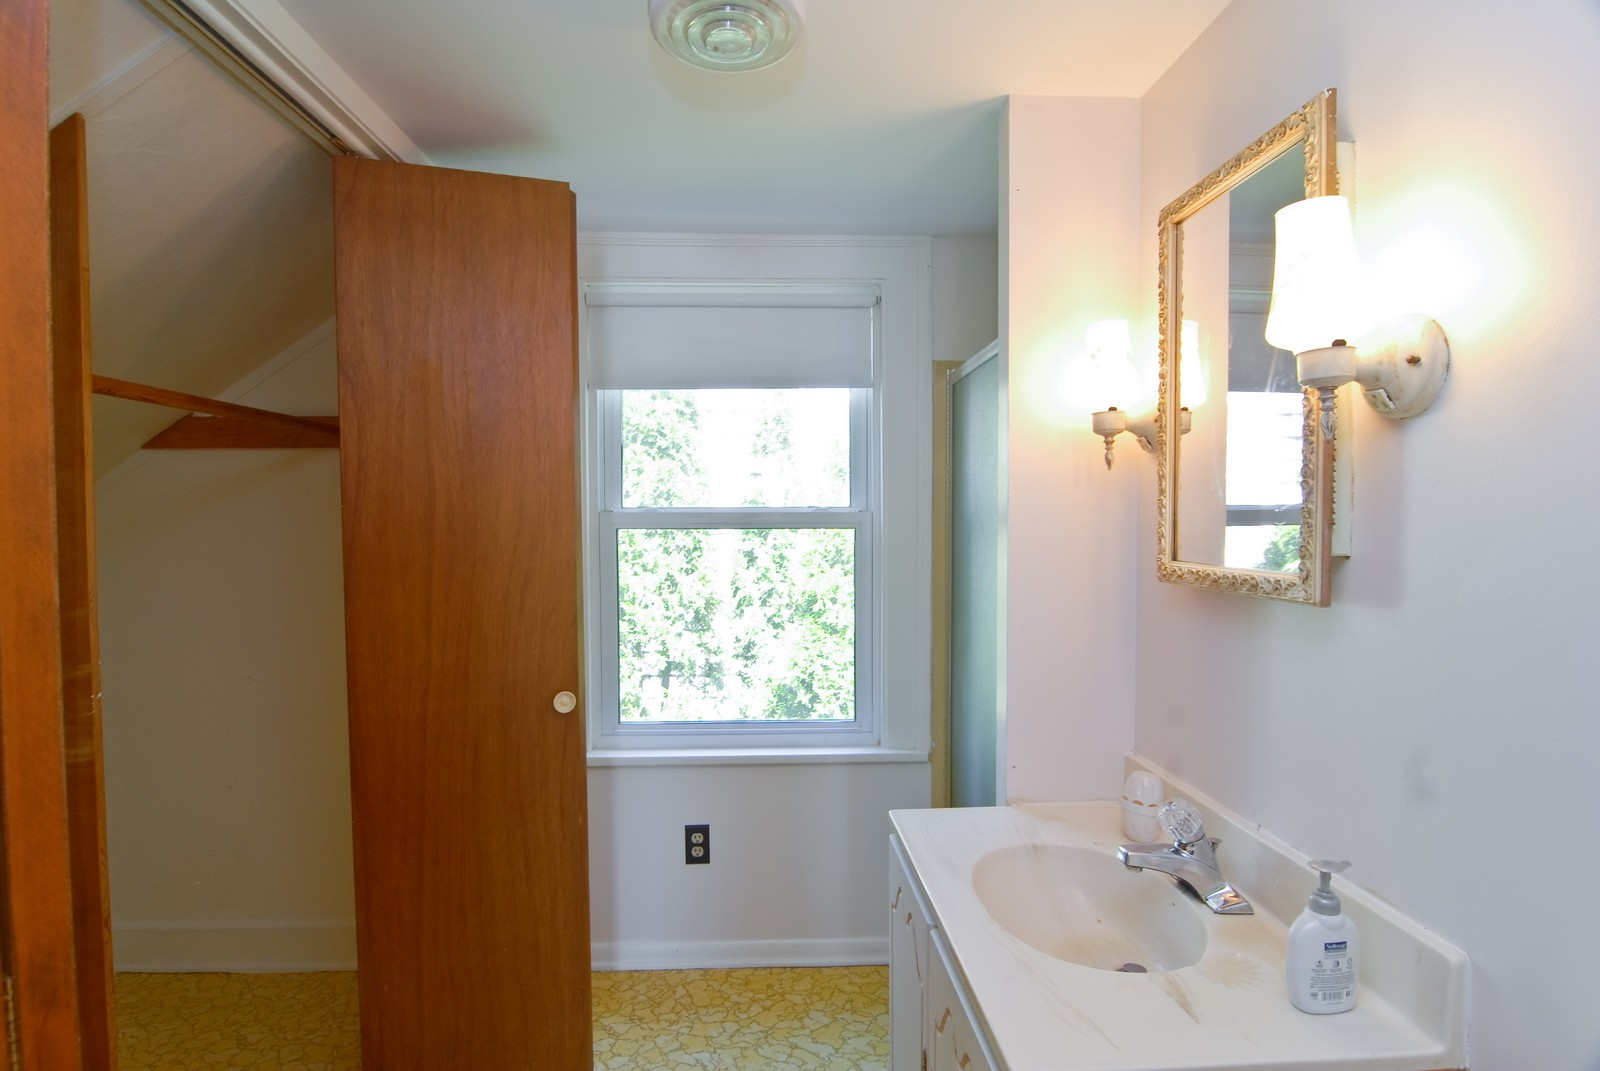 Real Estate Photography - 5525 Fremont Ave, Minneapolis, MN, 55419 - Master Bathroom